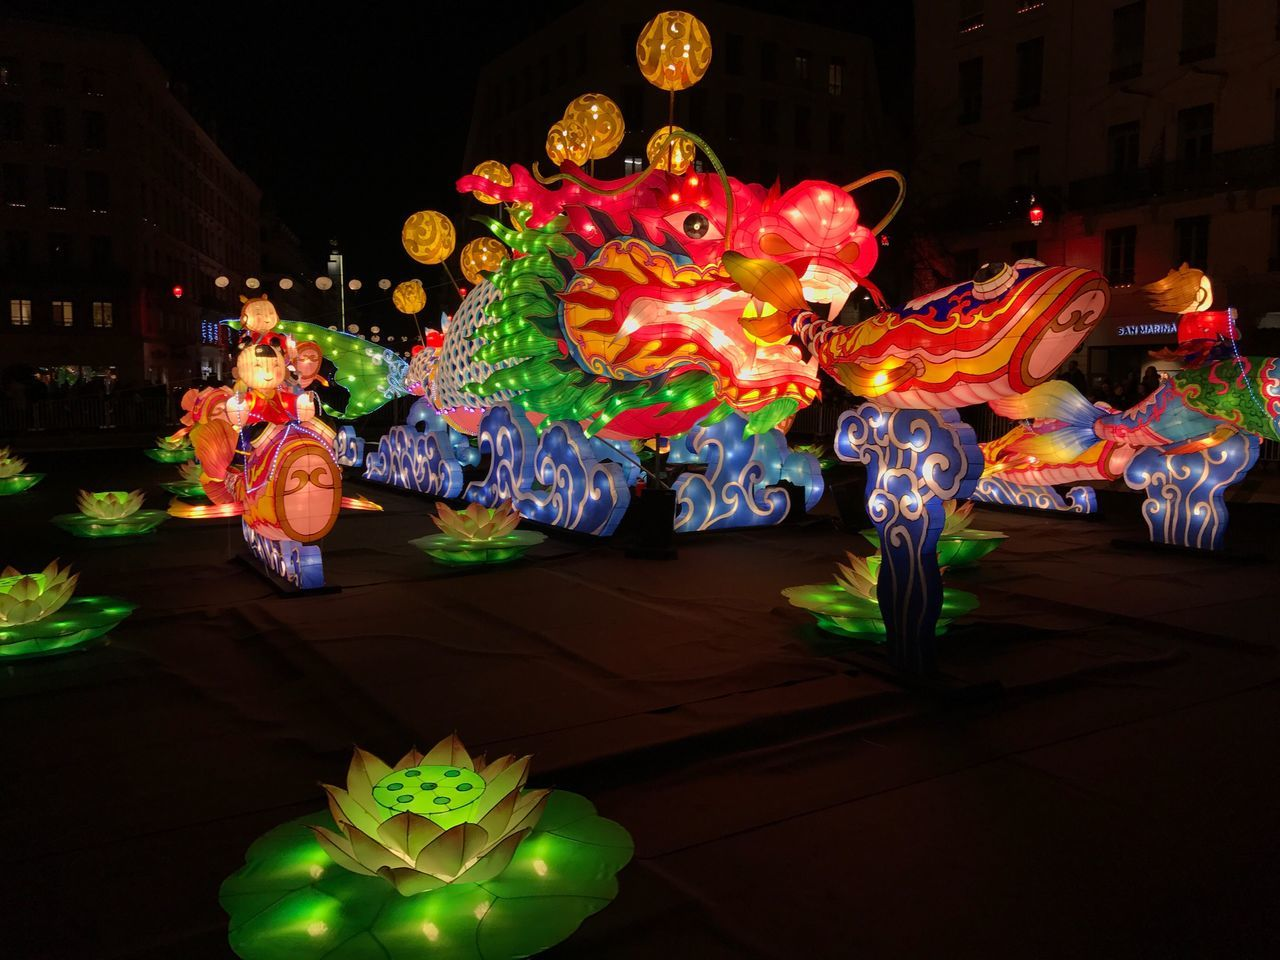 Fête des lumières, Lyon Night Illuminated Cultures Celebration Multi Colored Chinese New Year Chinese Lantern Chinese Lantern Festival Outdoors No People Chinese Dragon Fete Des Lumieres Lyon France Parade